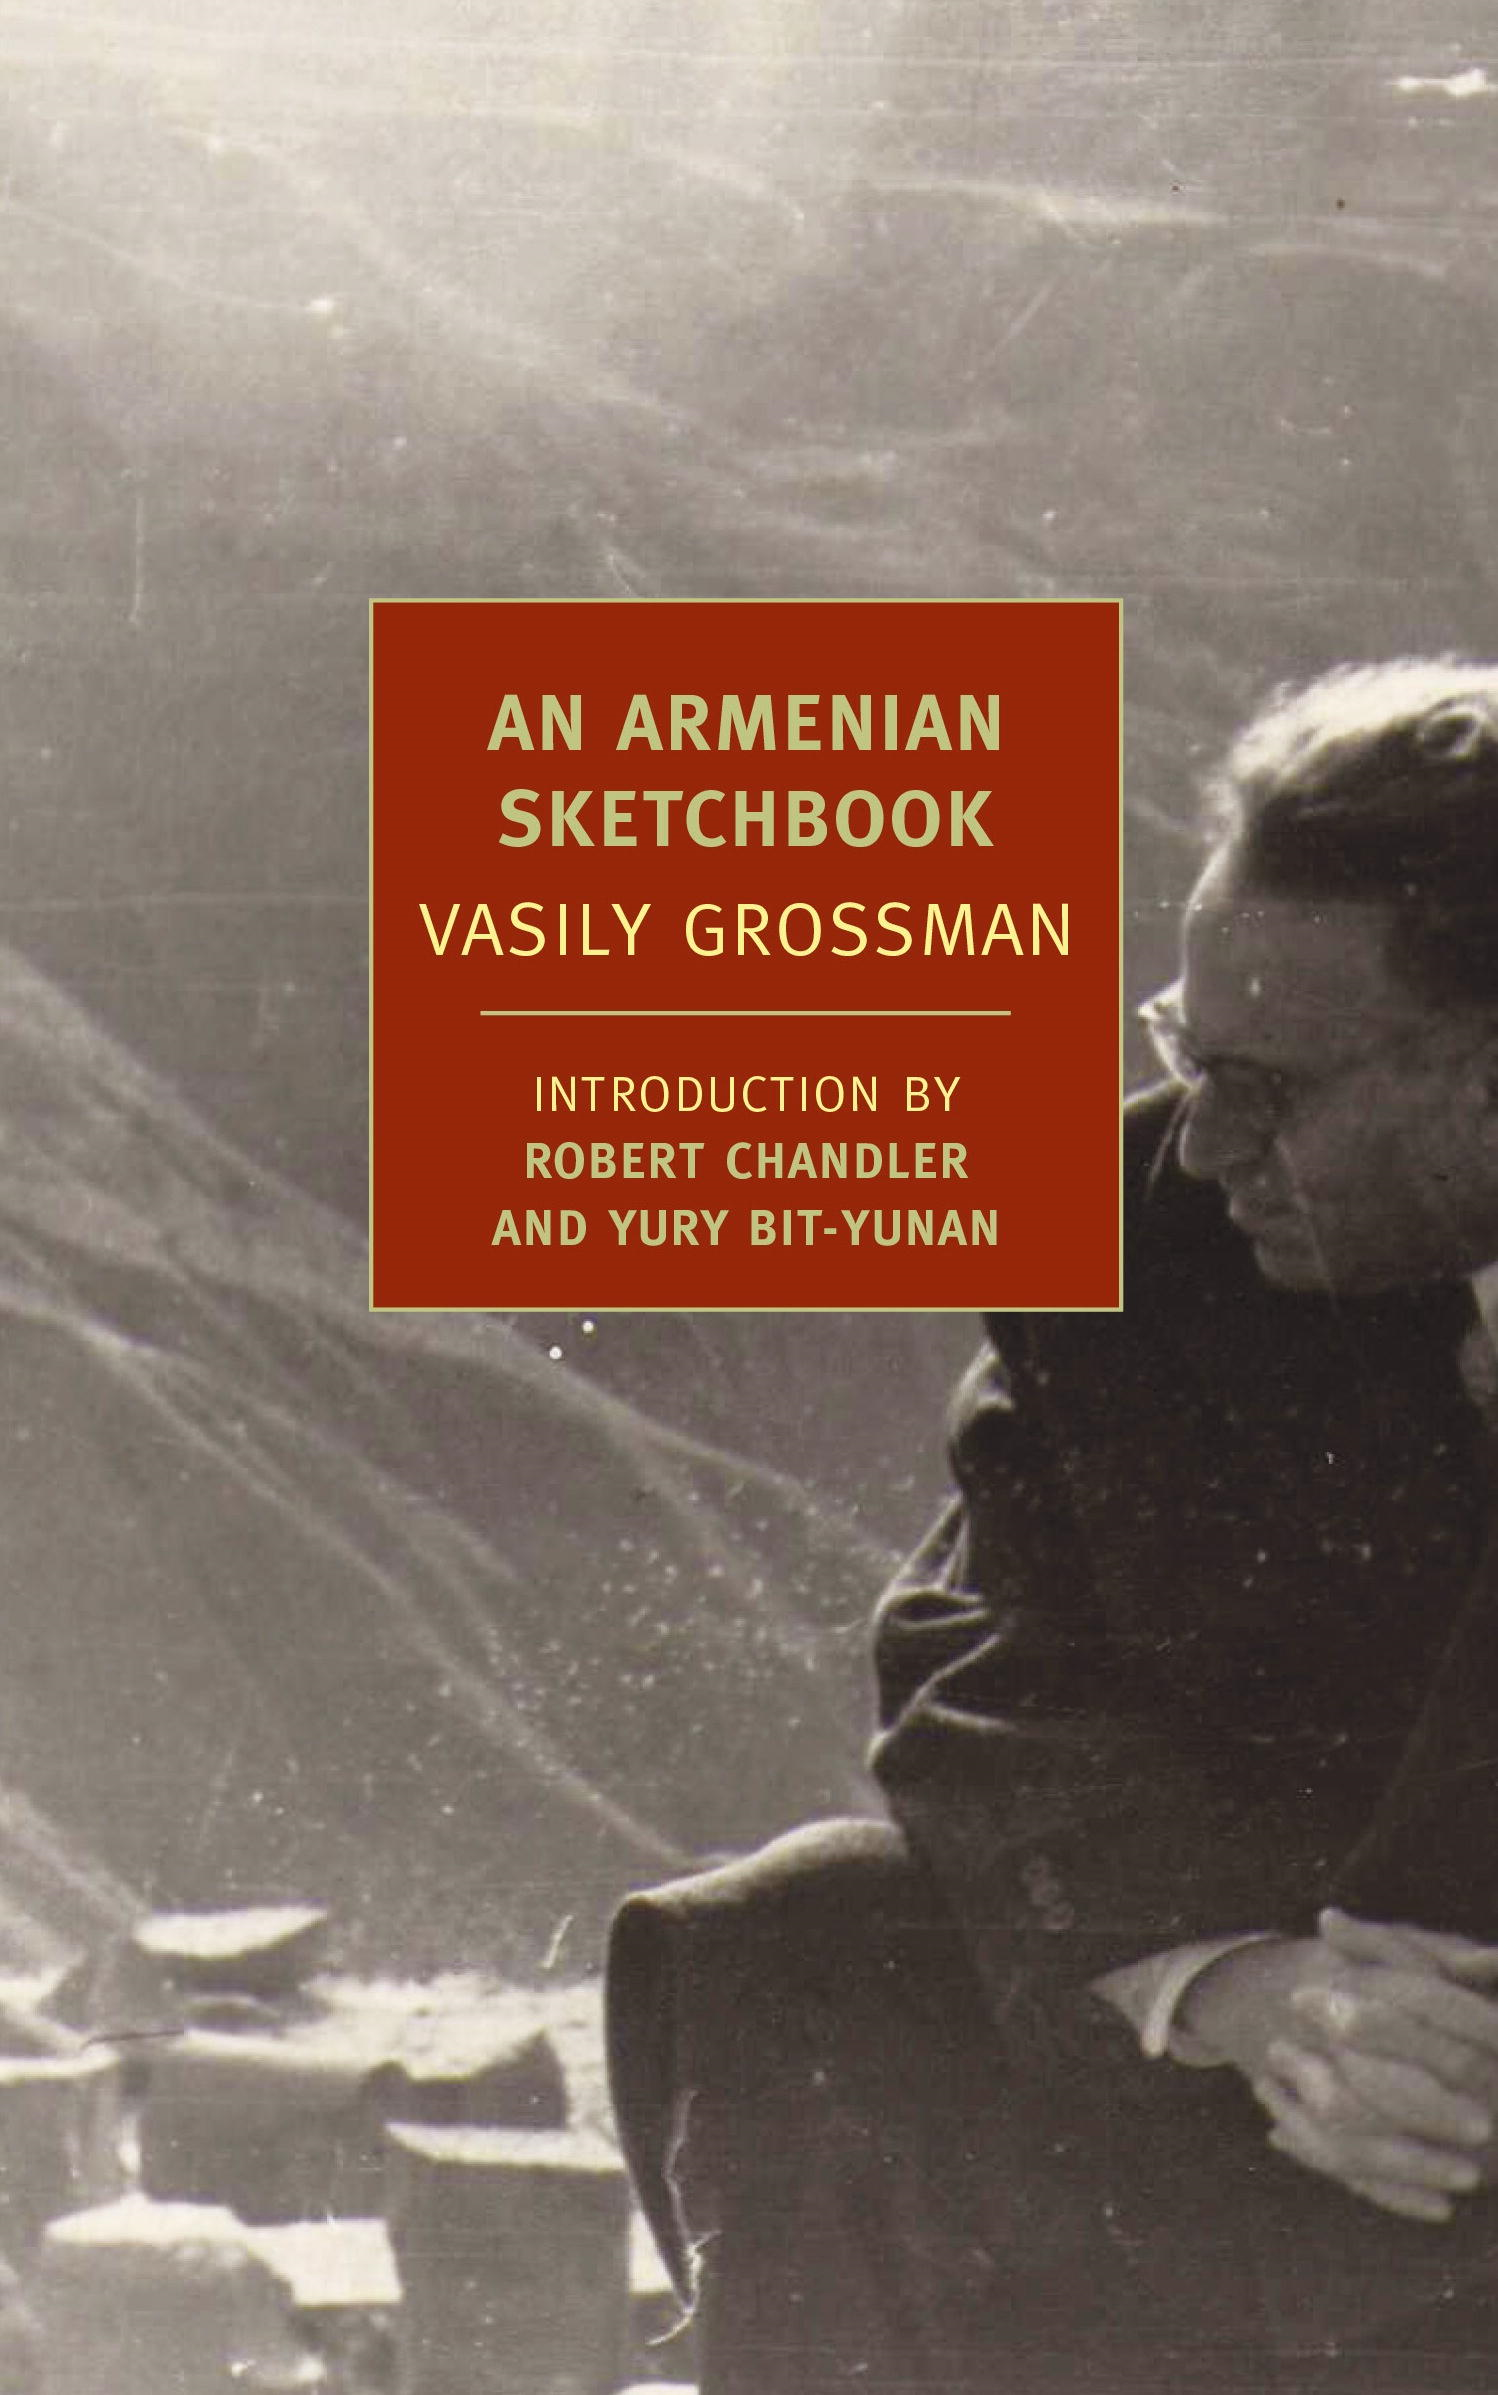 An Armenian Sketchbook By: Vasily Grossman